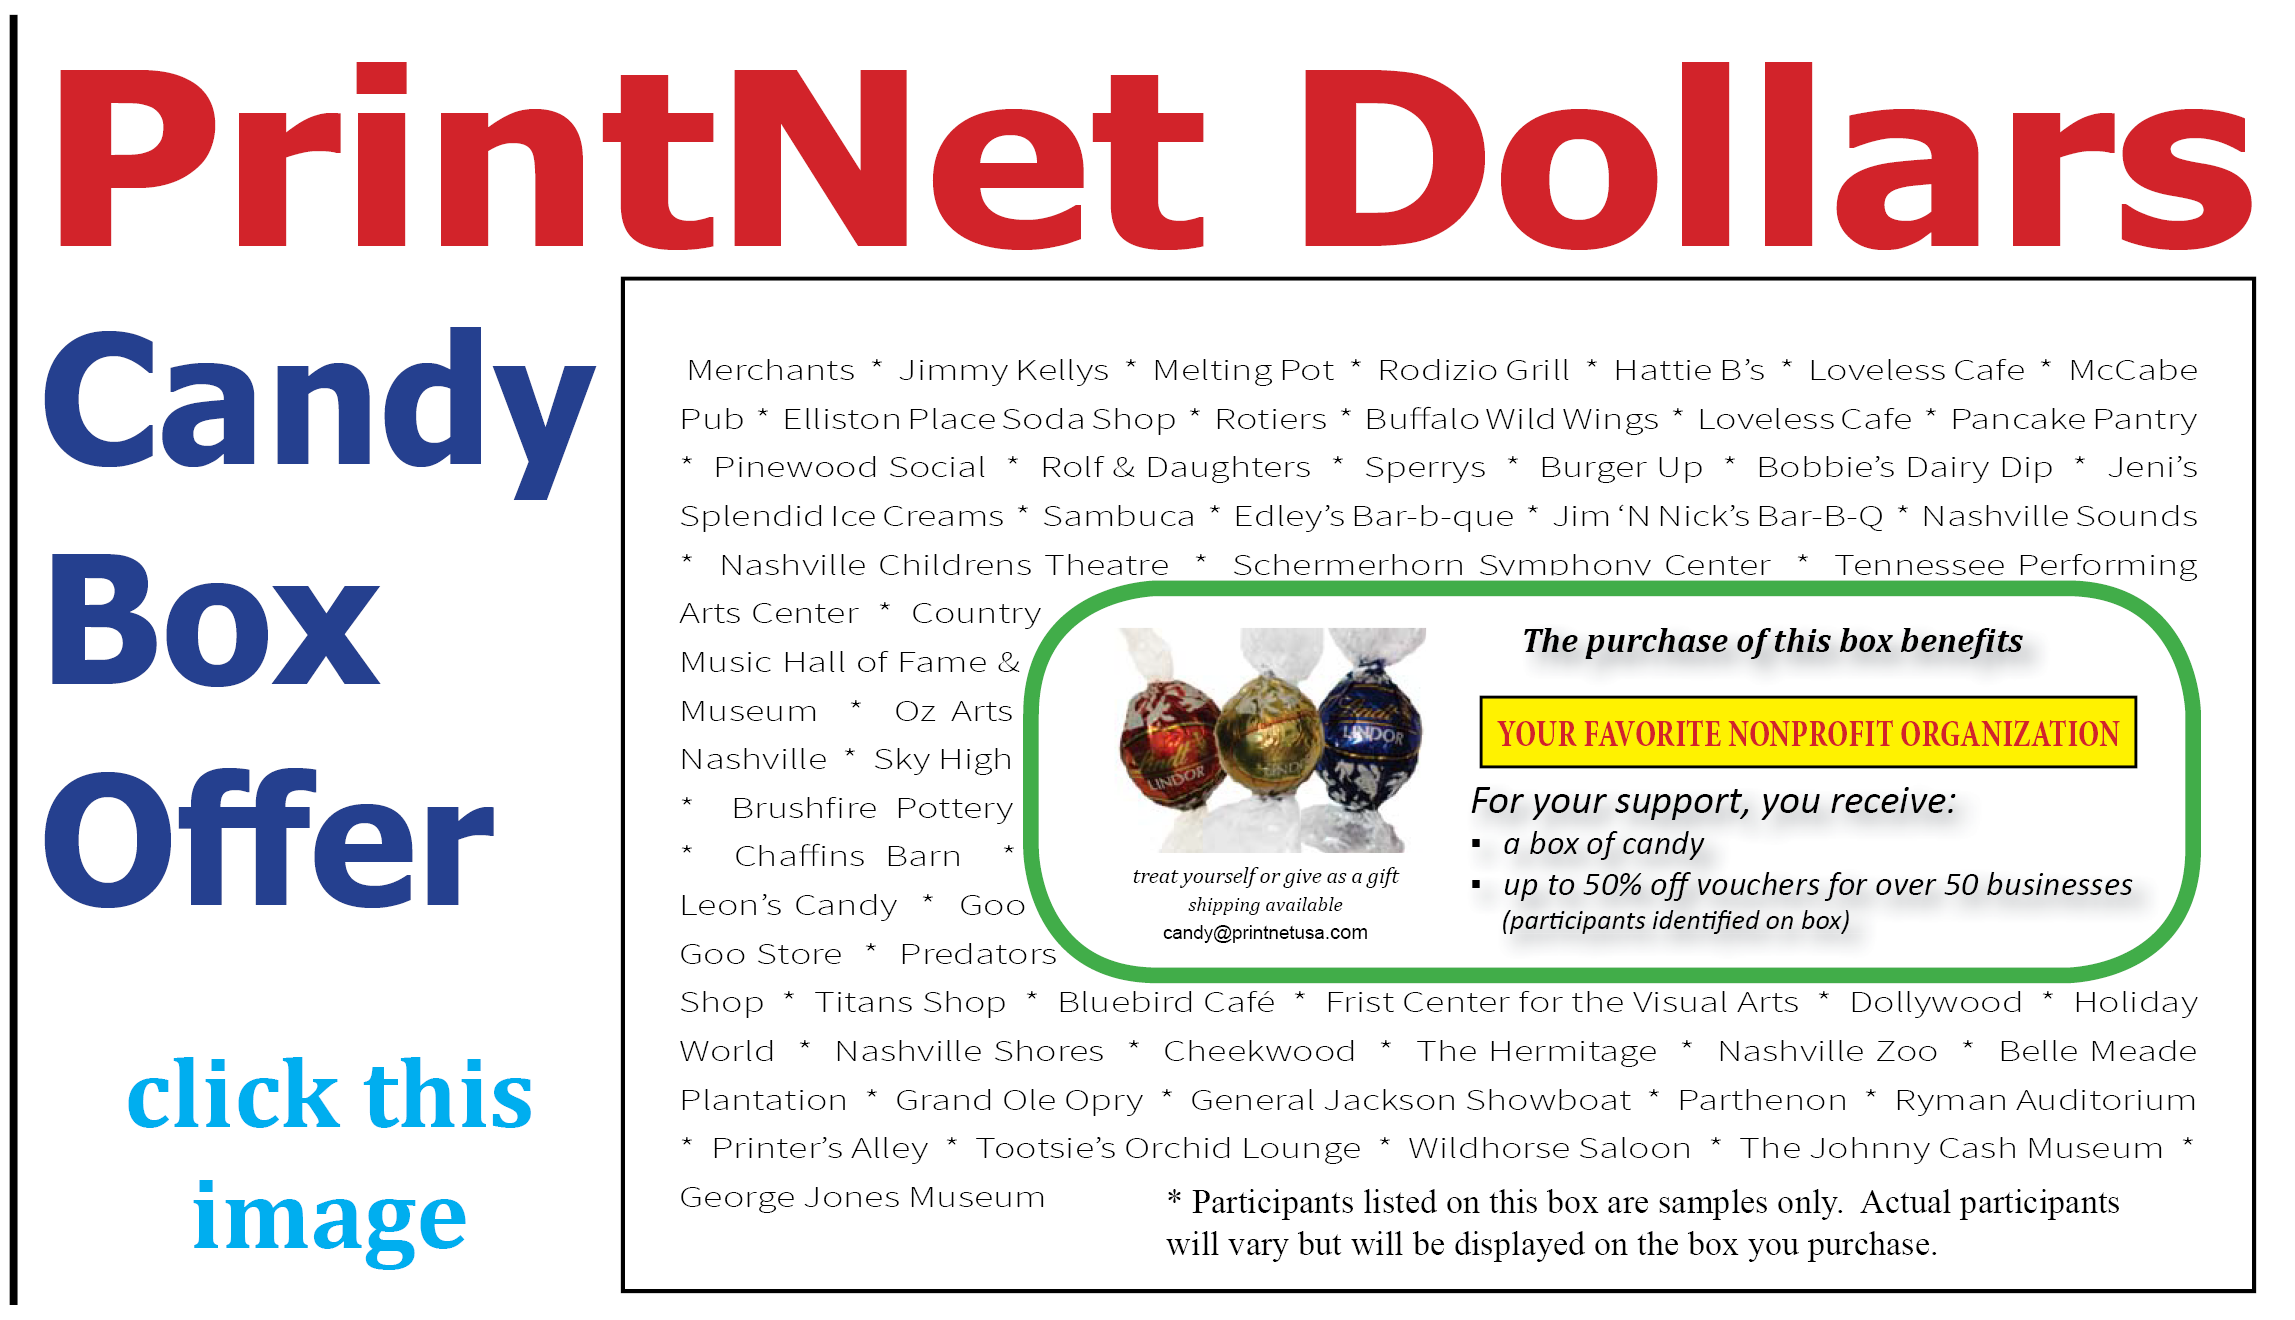 PrintNet Dollars Candy Box Offer